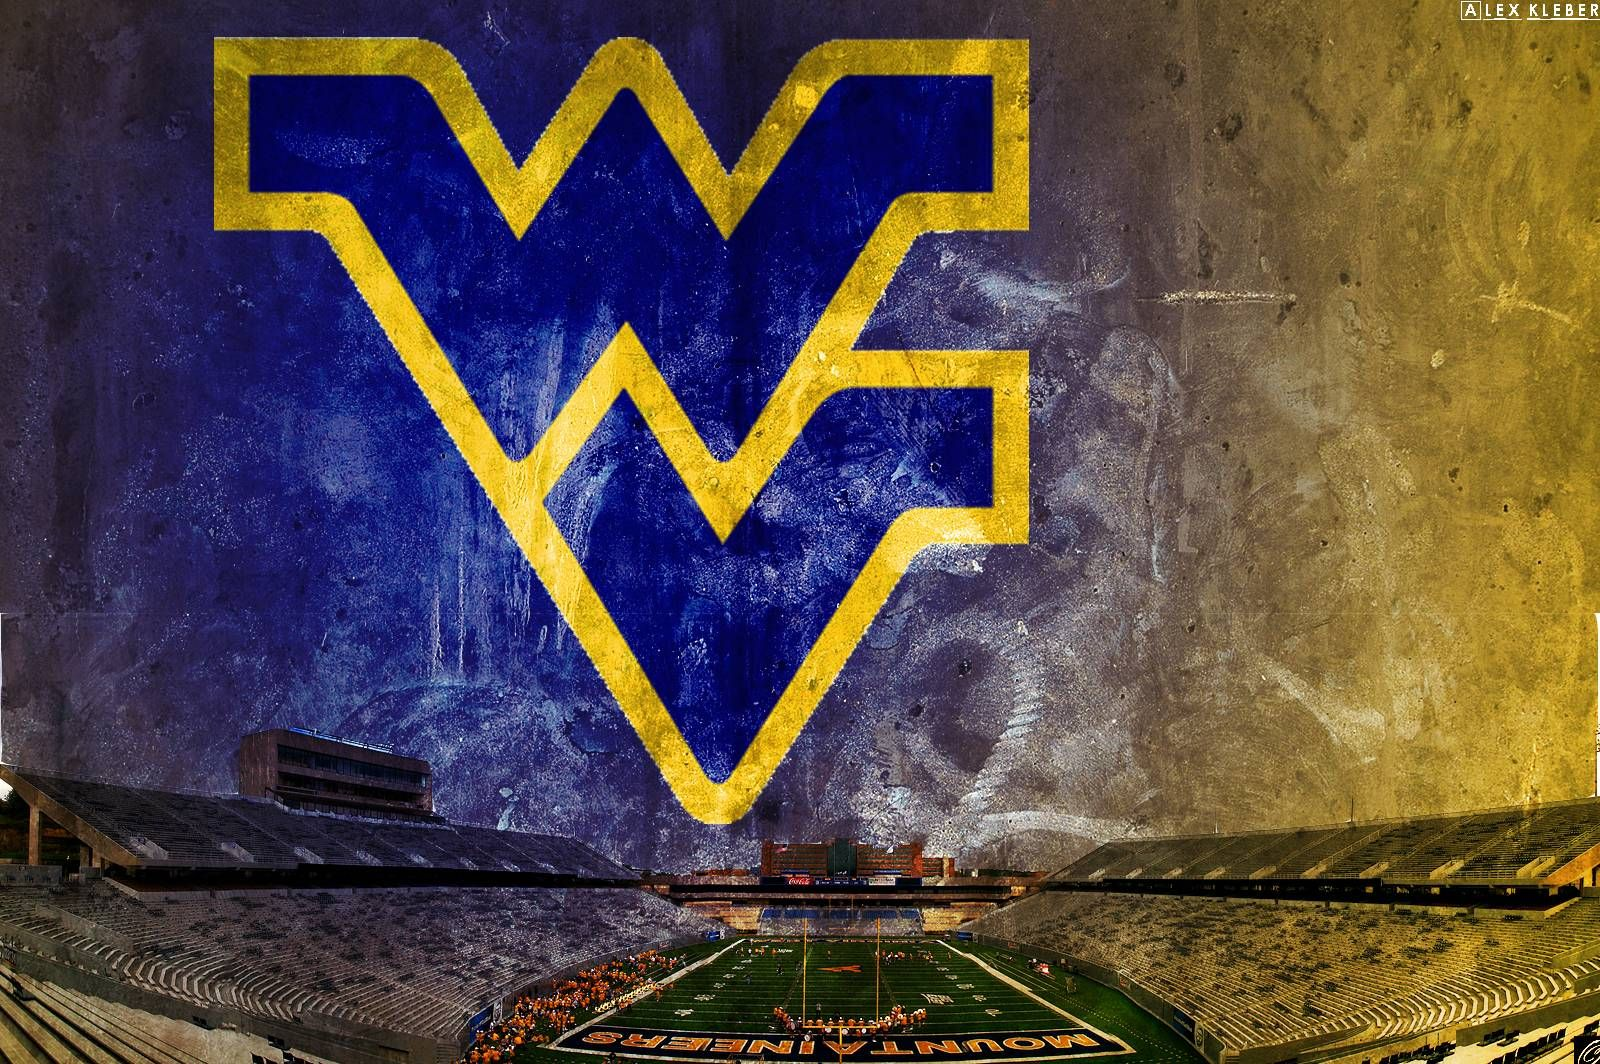 West Virginia Live Wallpaper Android Apps On Google Play Wvu Mountaineers Wvu Football West Virginia Mountaineers Football